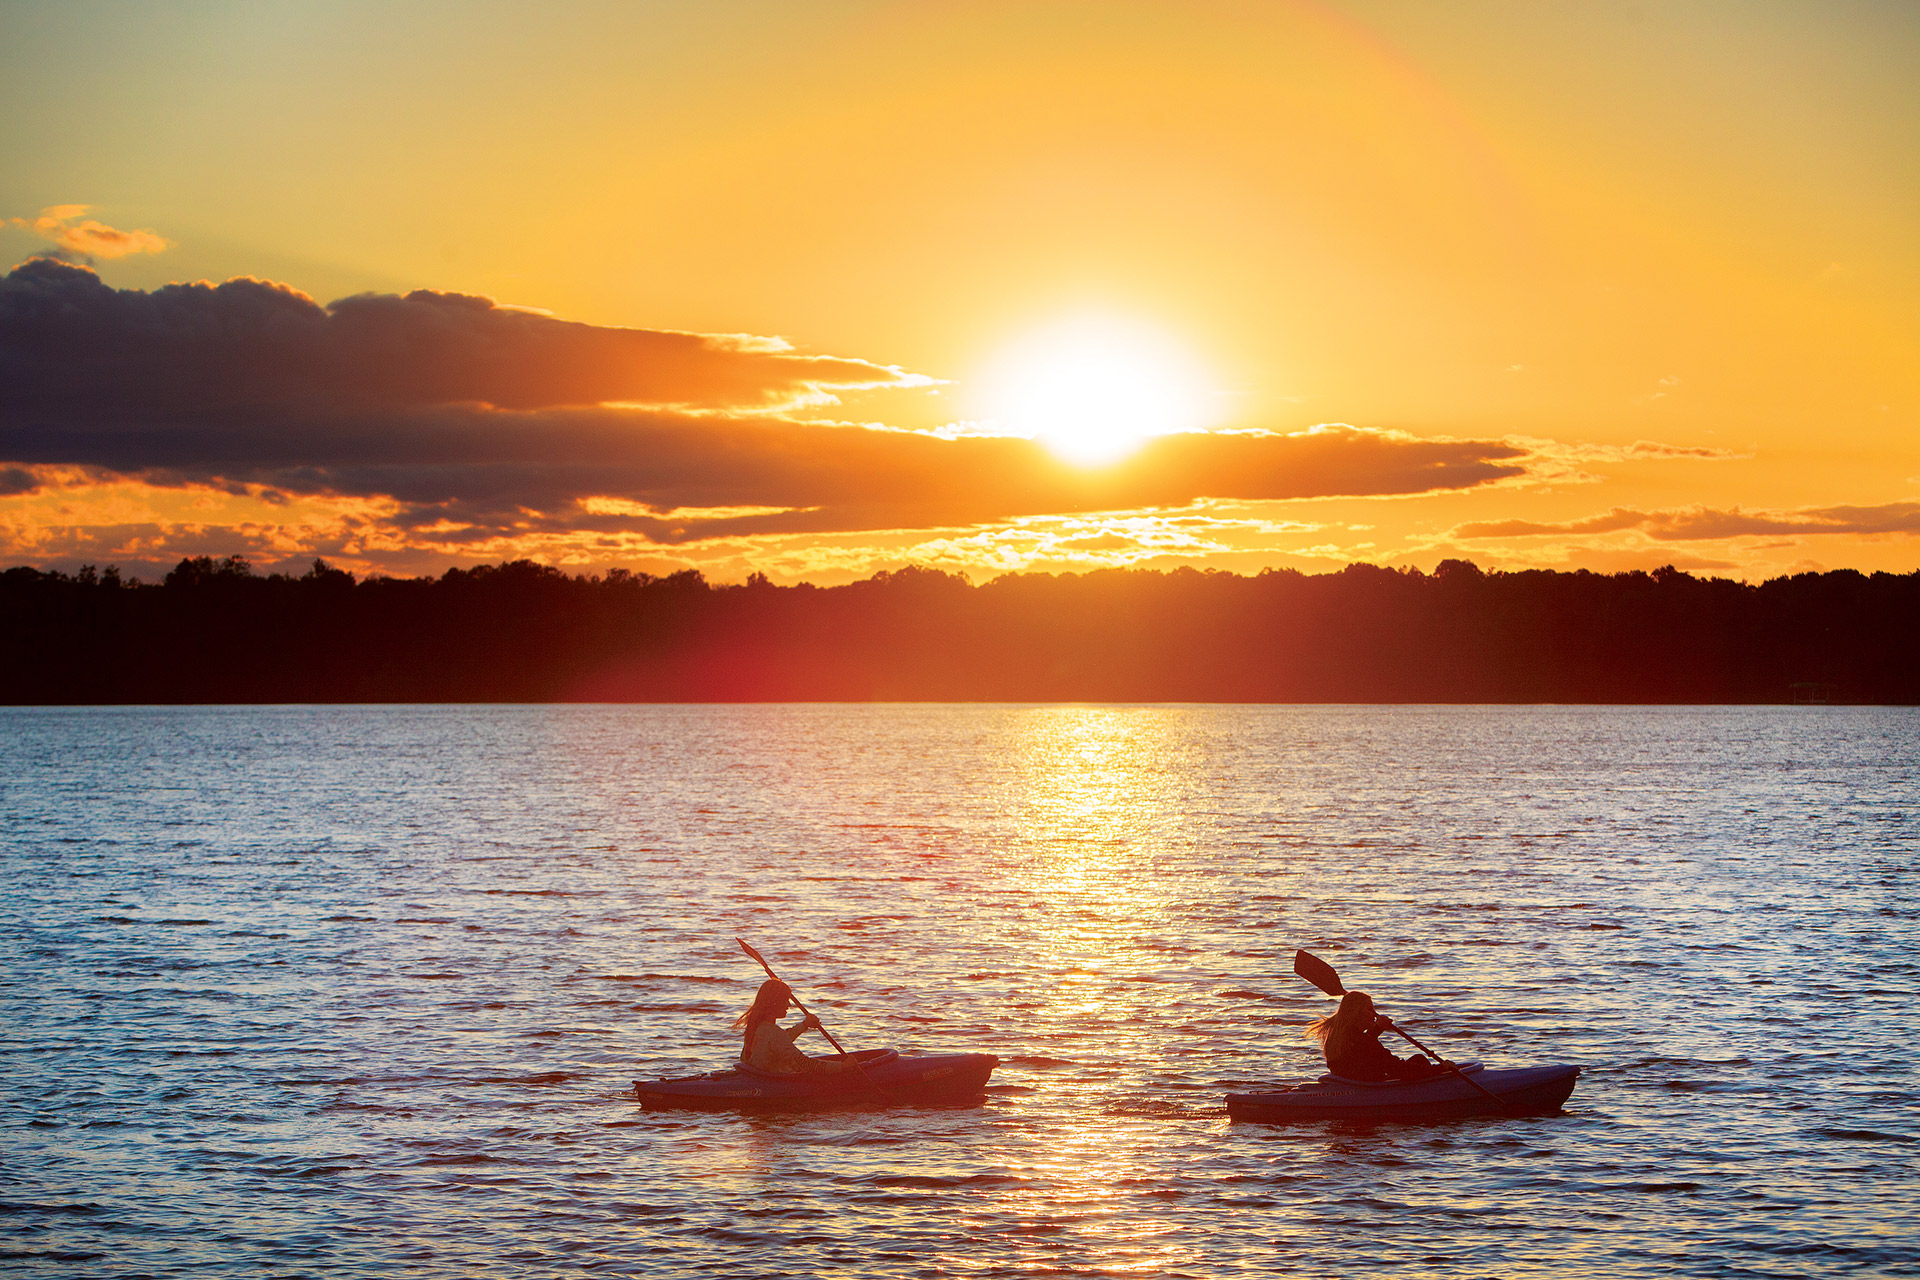 Two canoers paddling on the lake at sunset